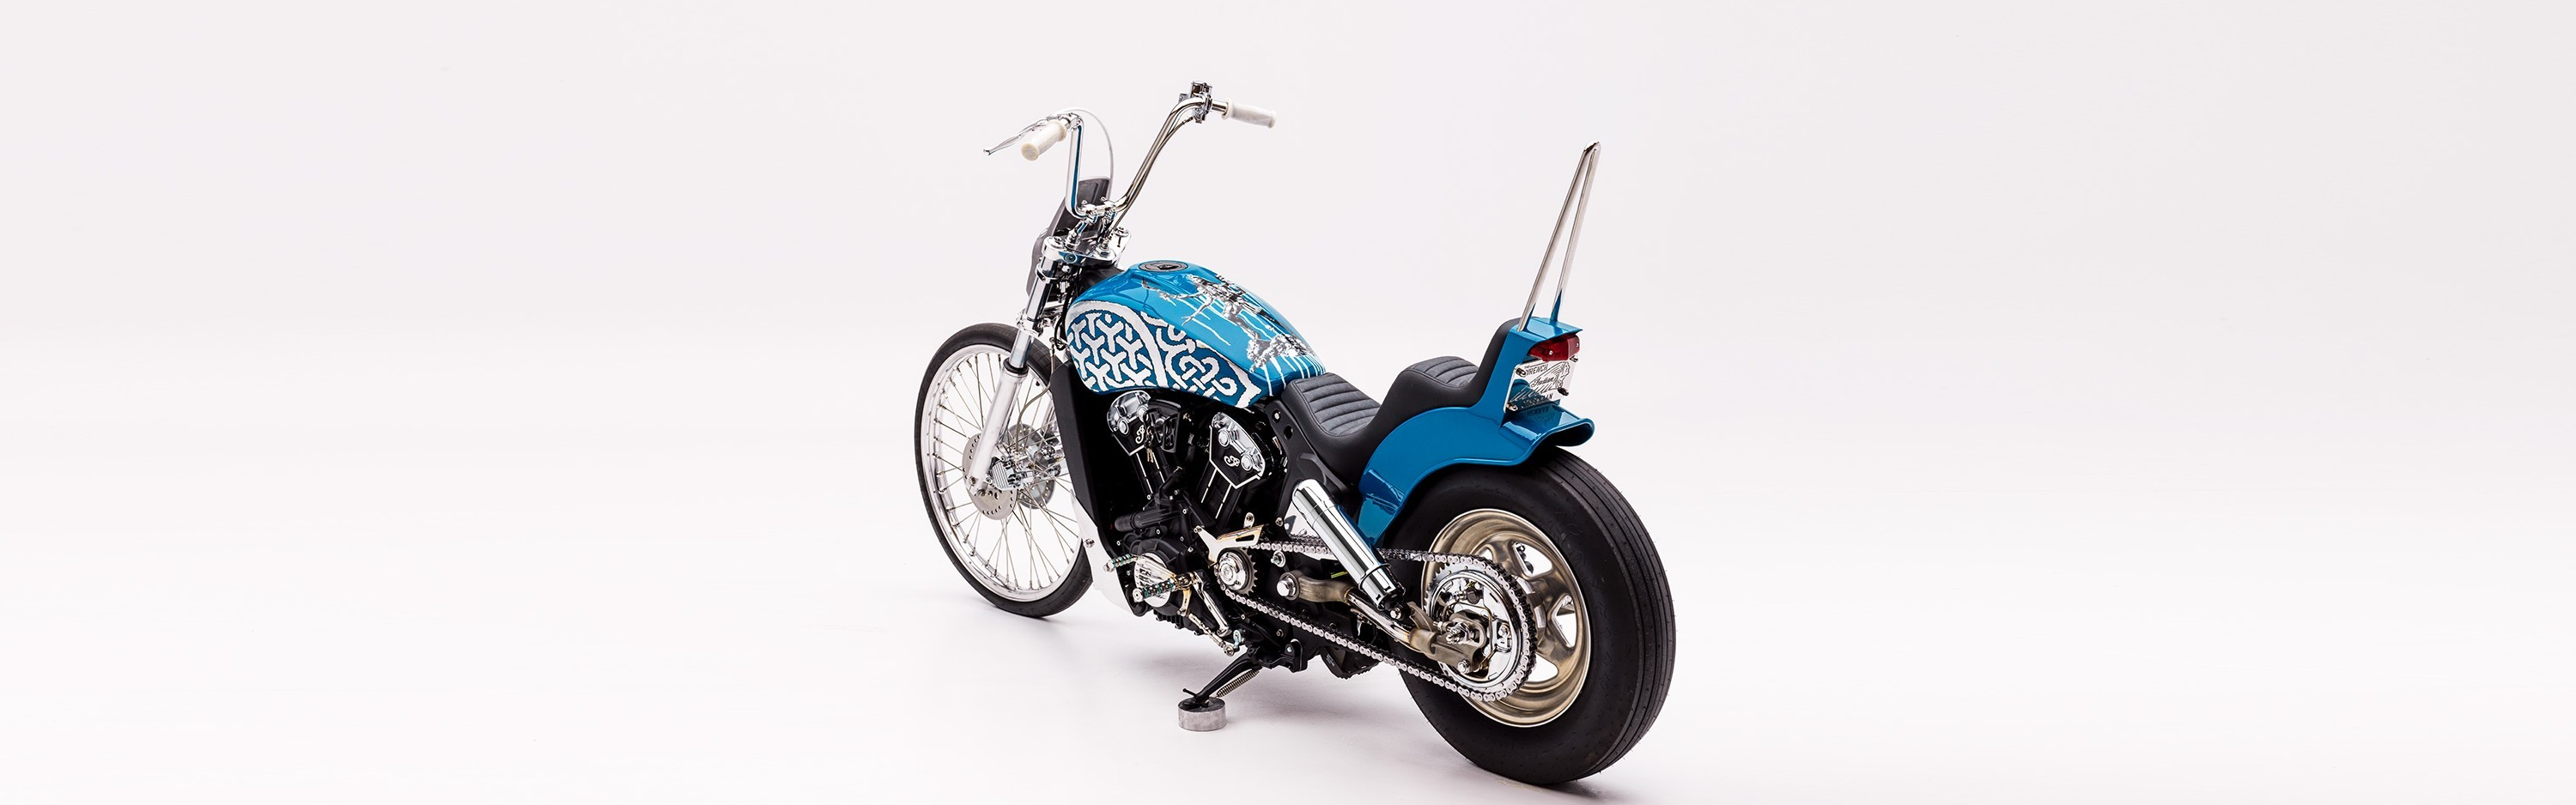 indian-motorcycle-the-wrench-scout-bobber-build-off-8